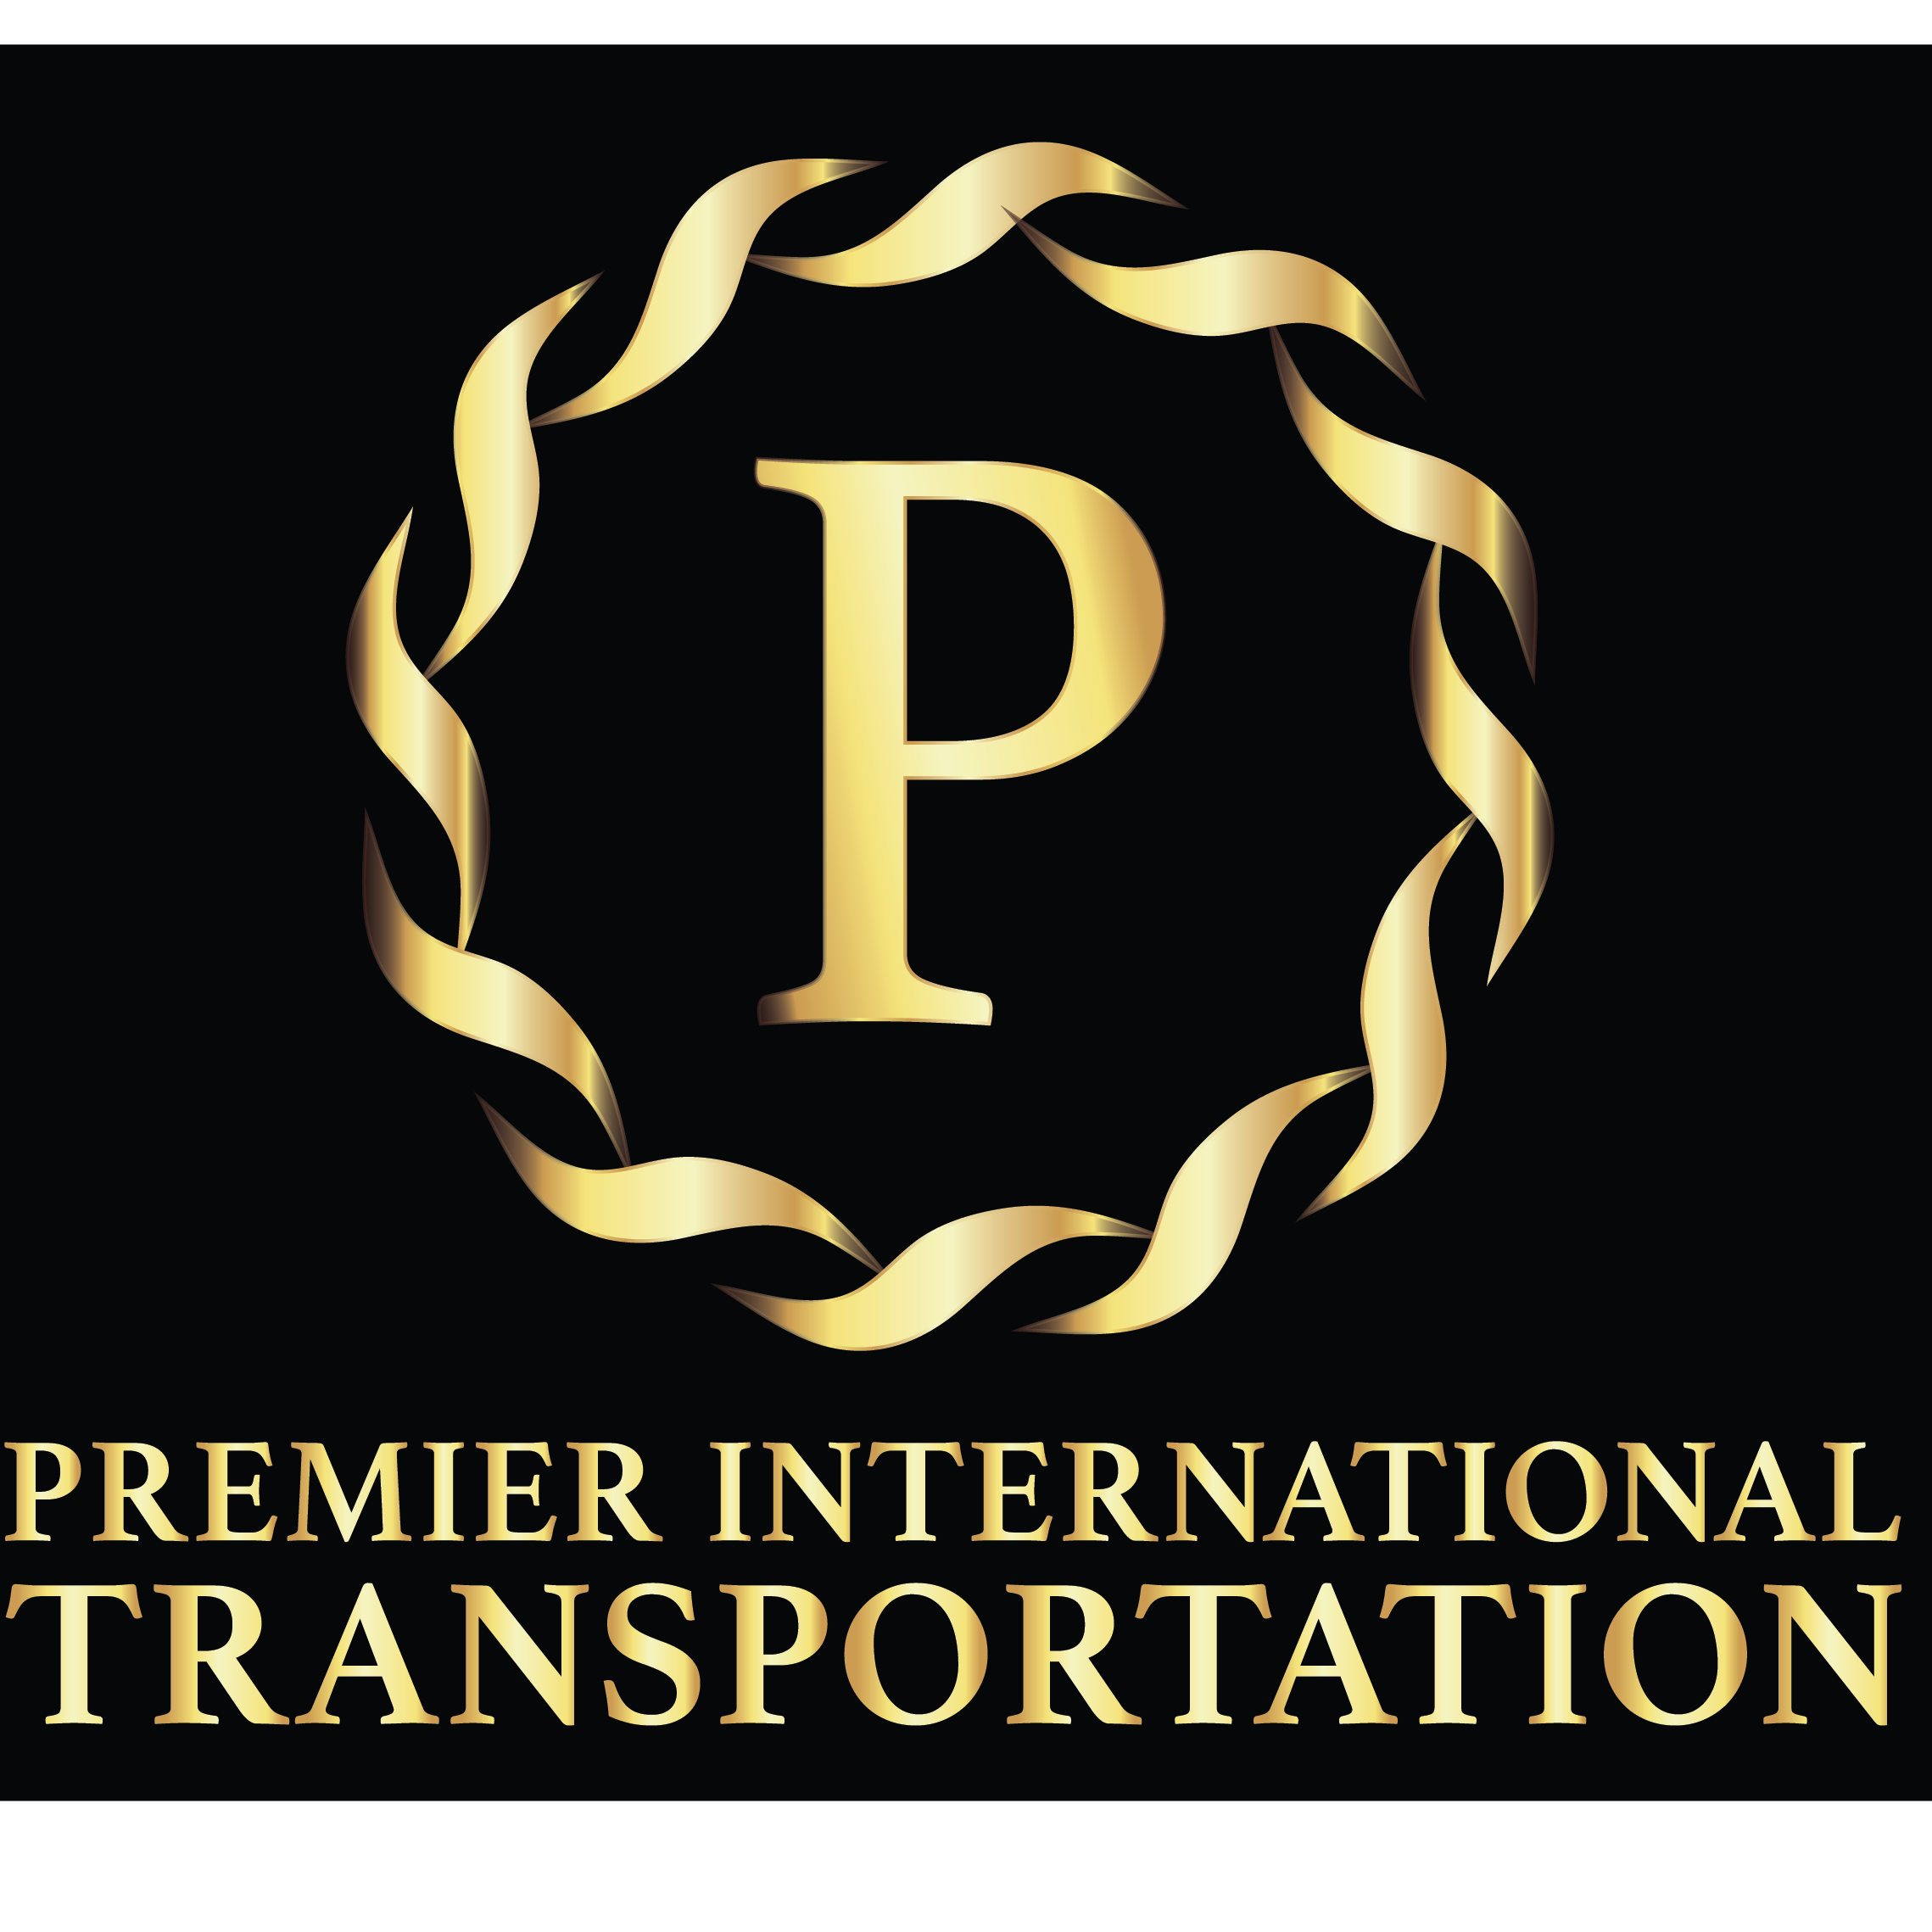 Premier International Transportation